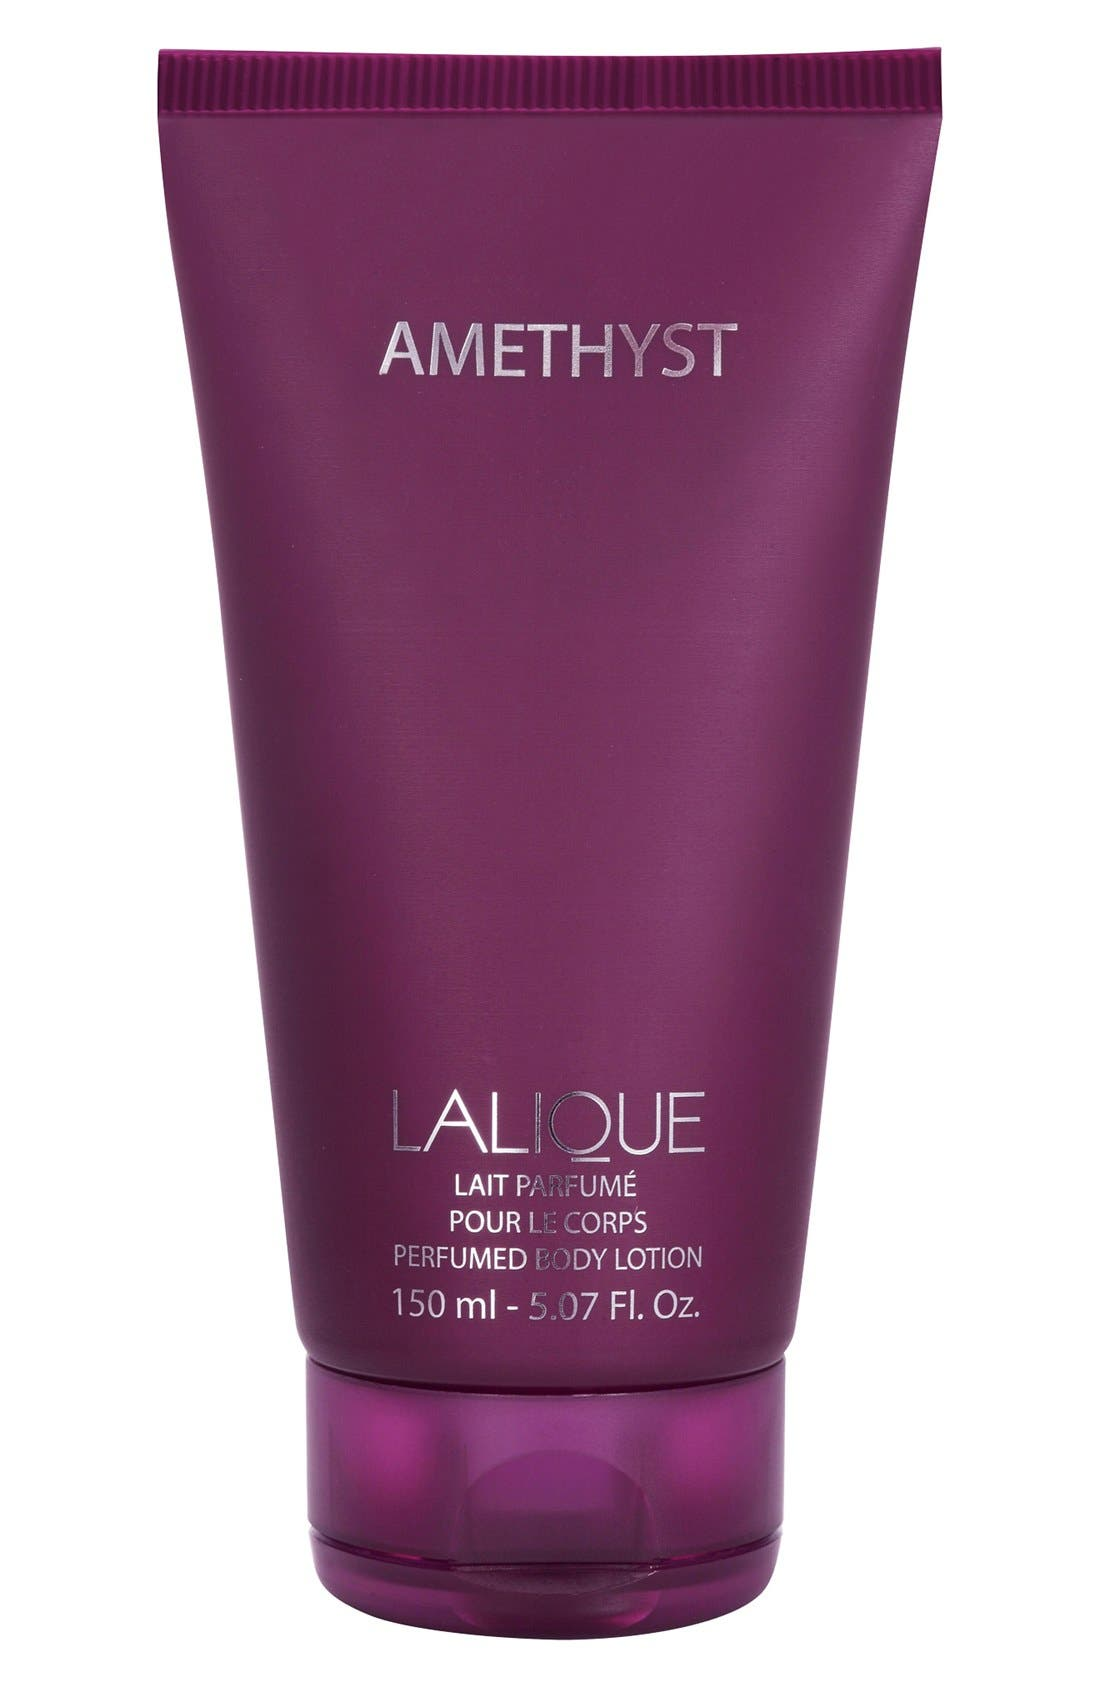 'Amethyst' Body Lotion,                             Main thumbnail 1, color,                             000